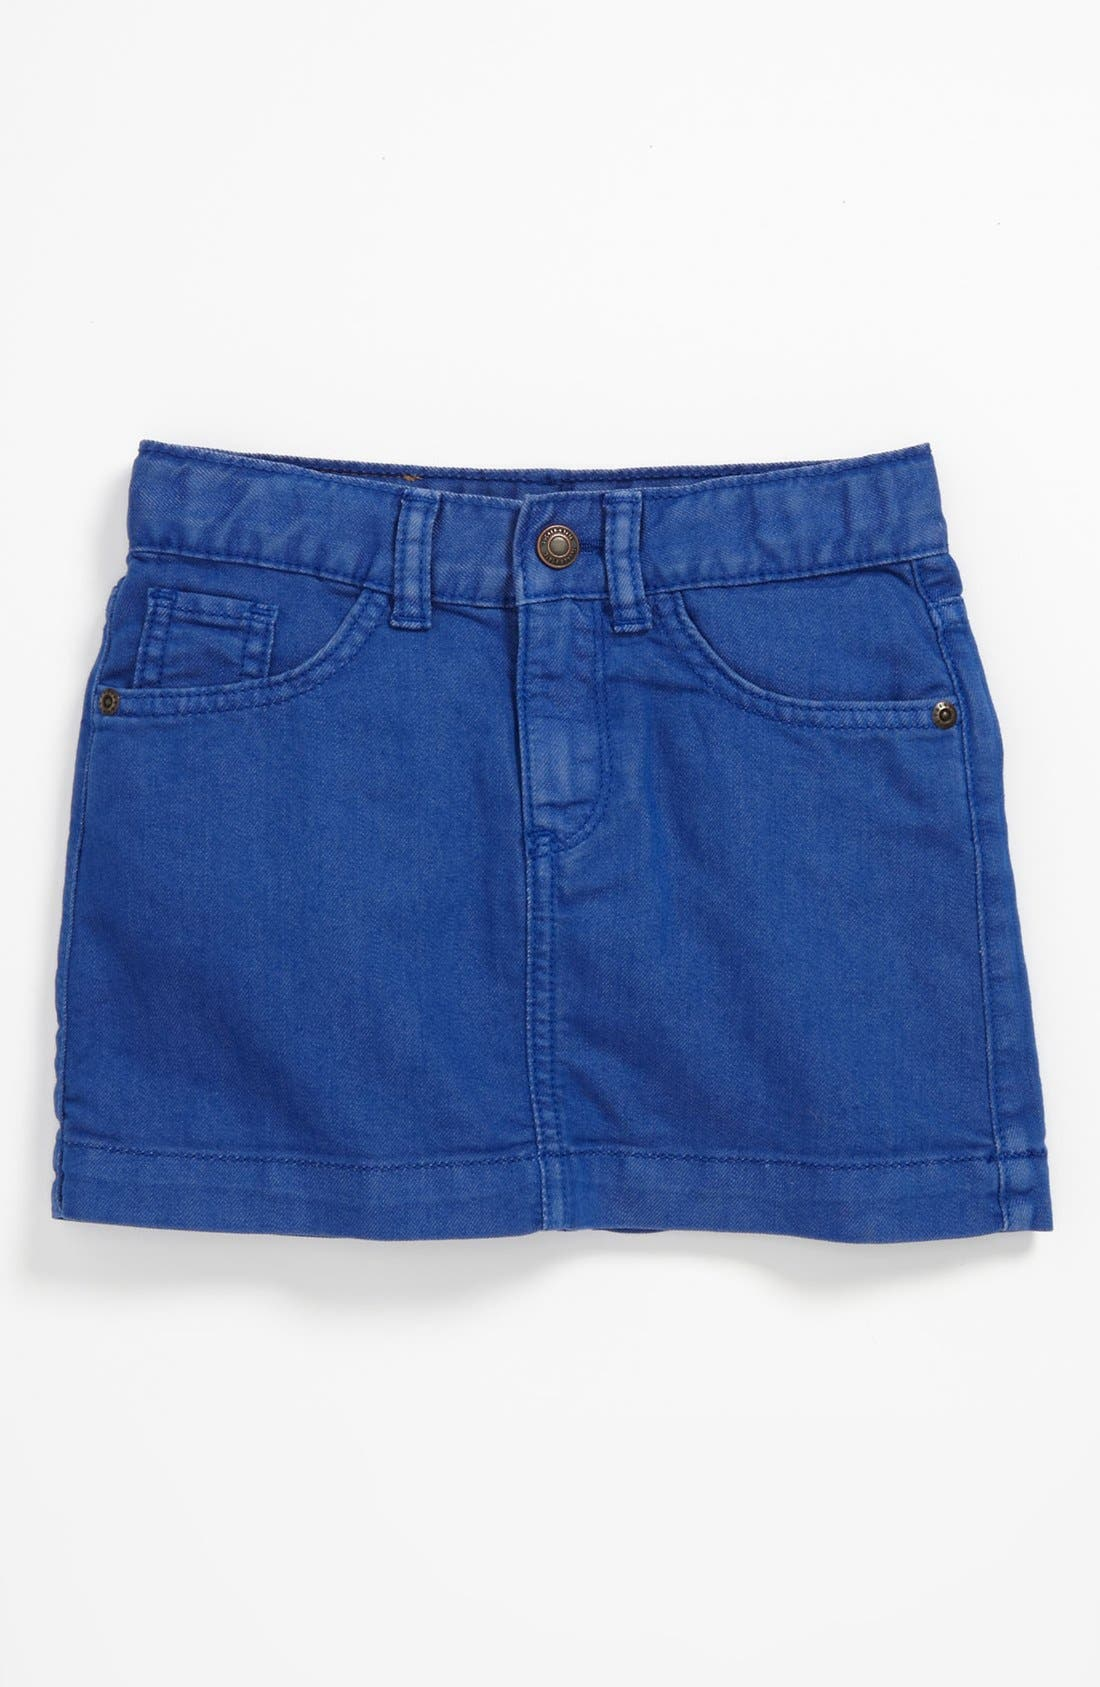 Alternate Image 1 Selected - Tucker + Tate Denim Skirt (Little Girls)